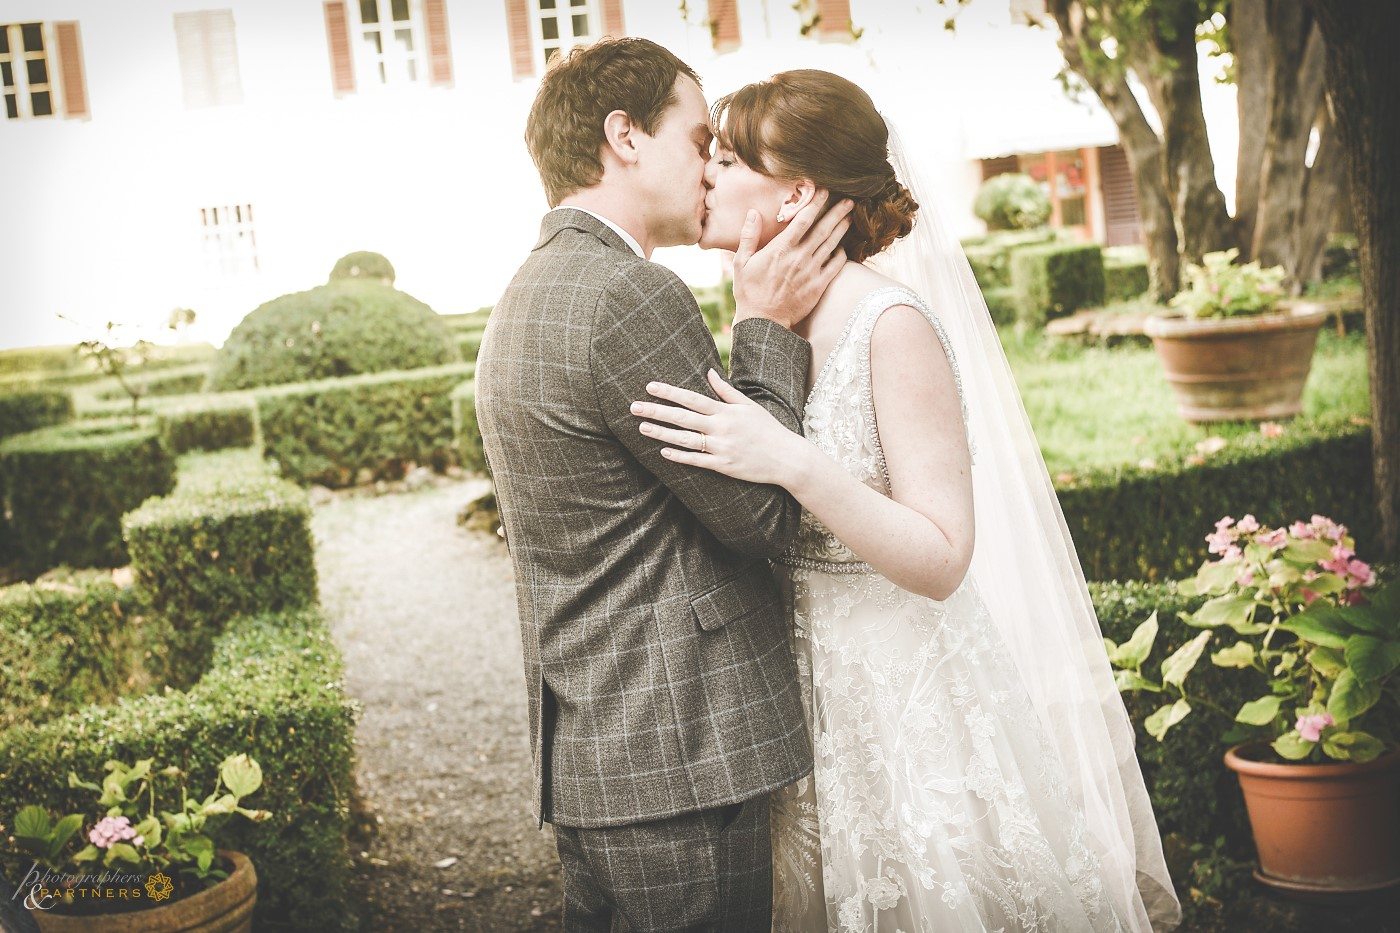 You can kiss the bride!